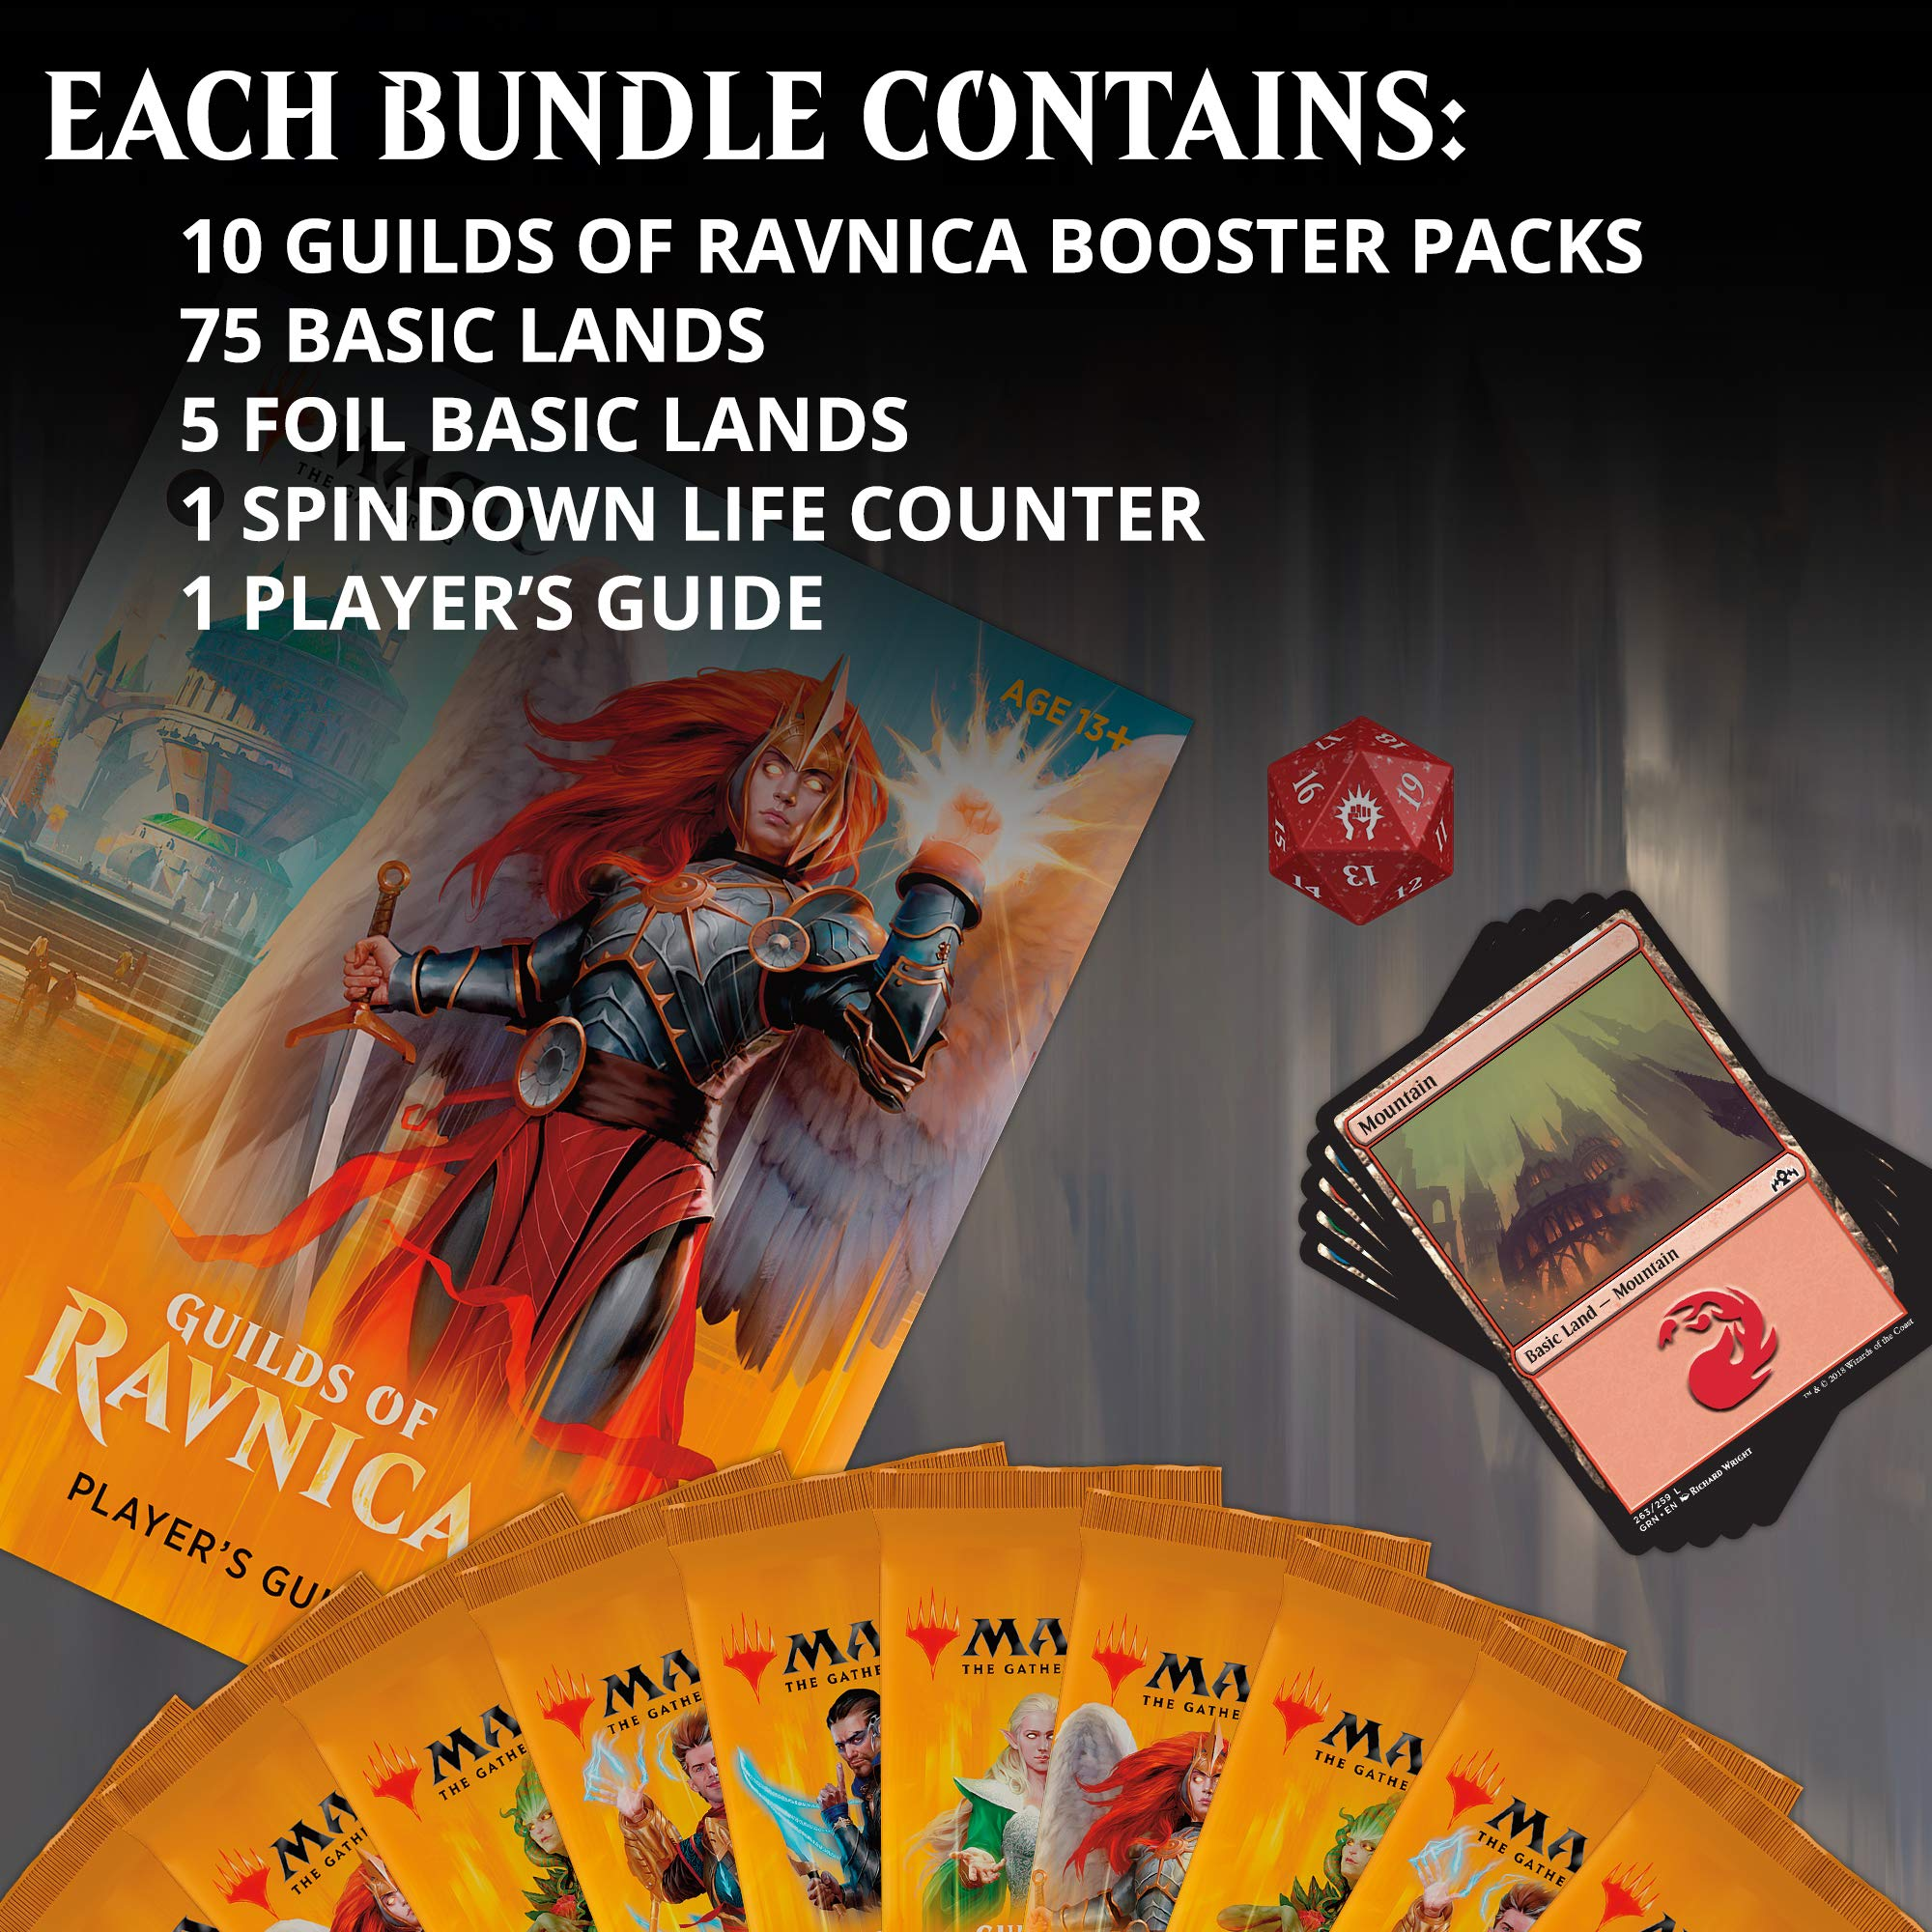 Magic: The Gathering Guilds of Ravnica Bundle | 10 Booster Packs + Land Cards (230 Cards) | Accessories | New Set by Magic: The Gathering (Image #2)